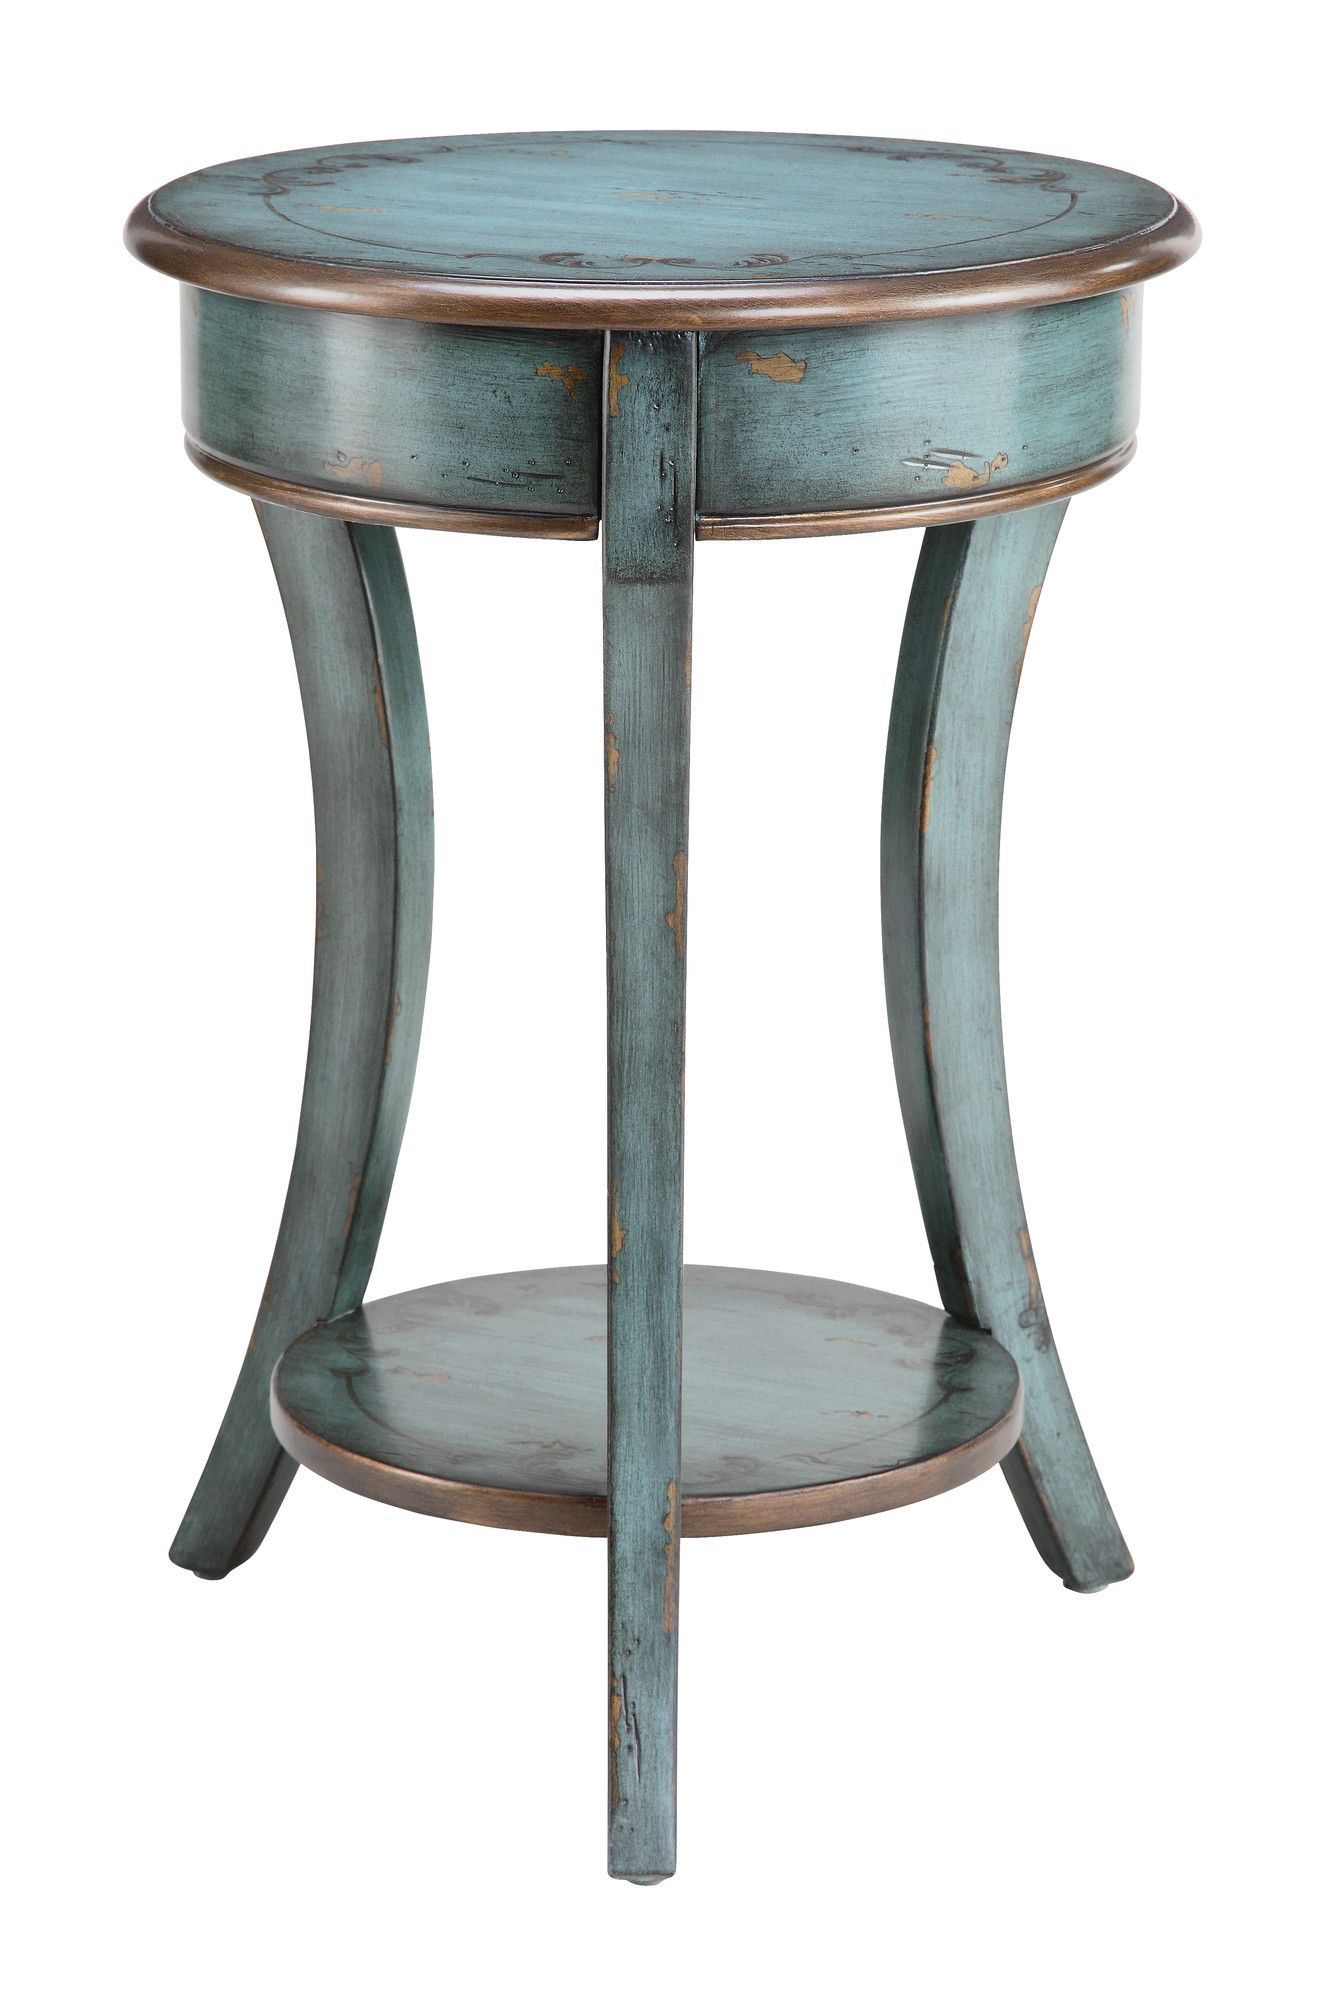 stein world painted treasures end table bronzed and distressed paint wood accent job modern furniture coffee outdoor folding piece glass set bookcase very narrow hall marble house